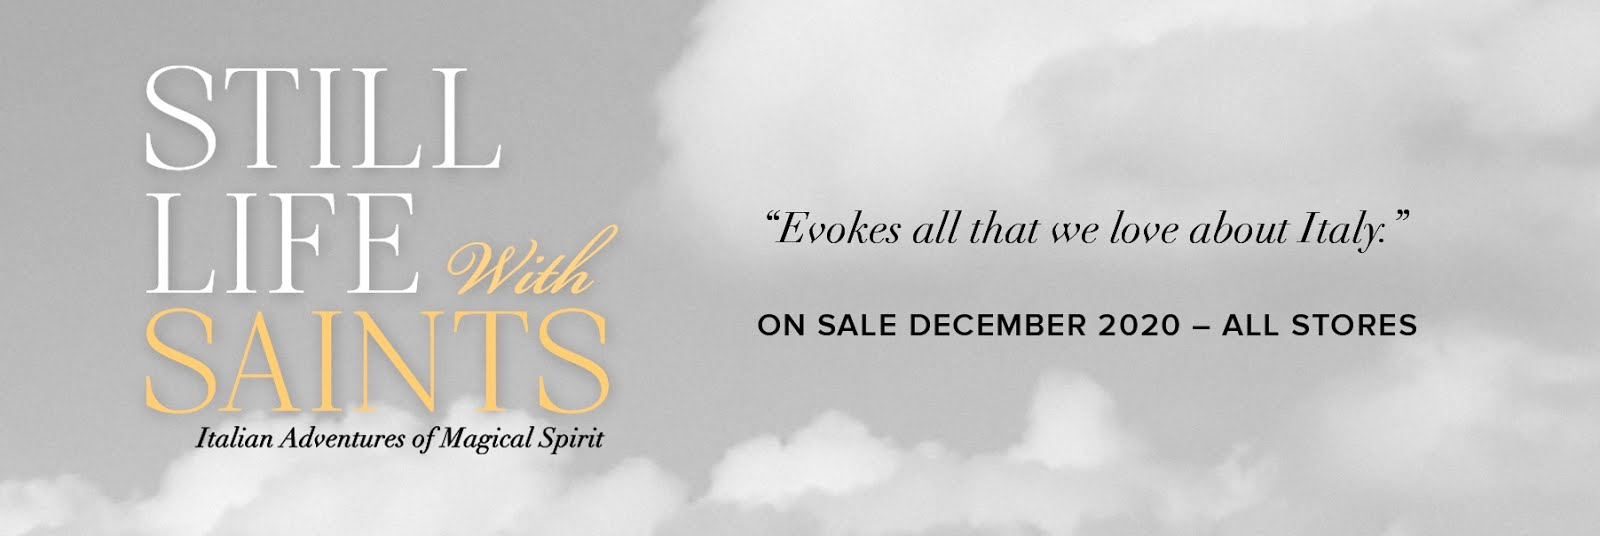 STILL LIFE WITH SAINTS Released DECEMBER 2020 | Click on the banner to buy the book